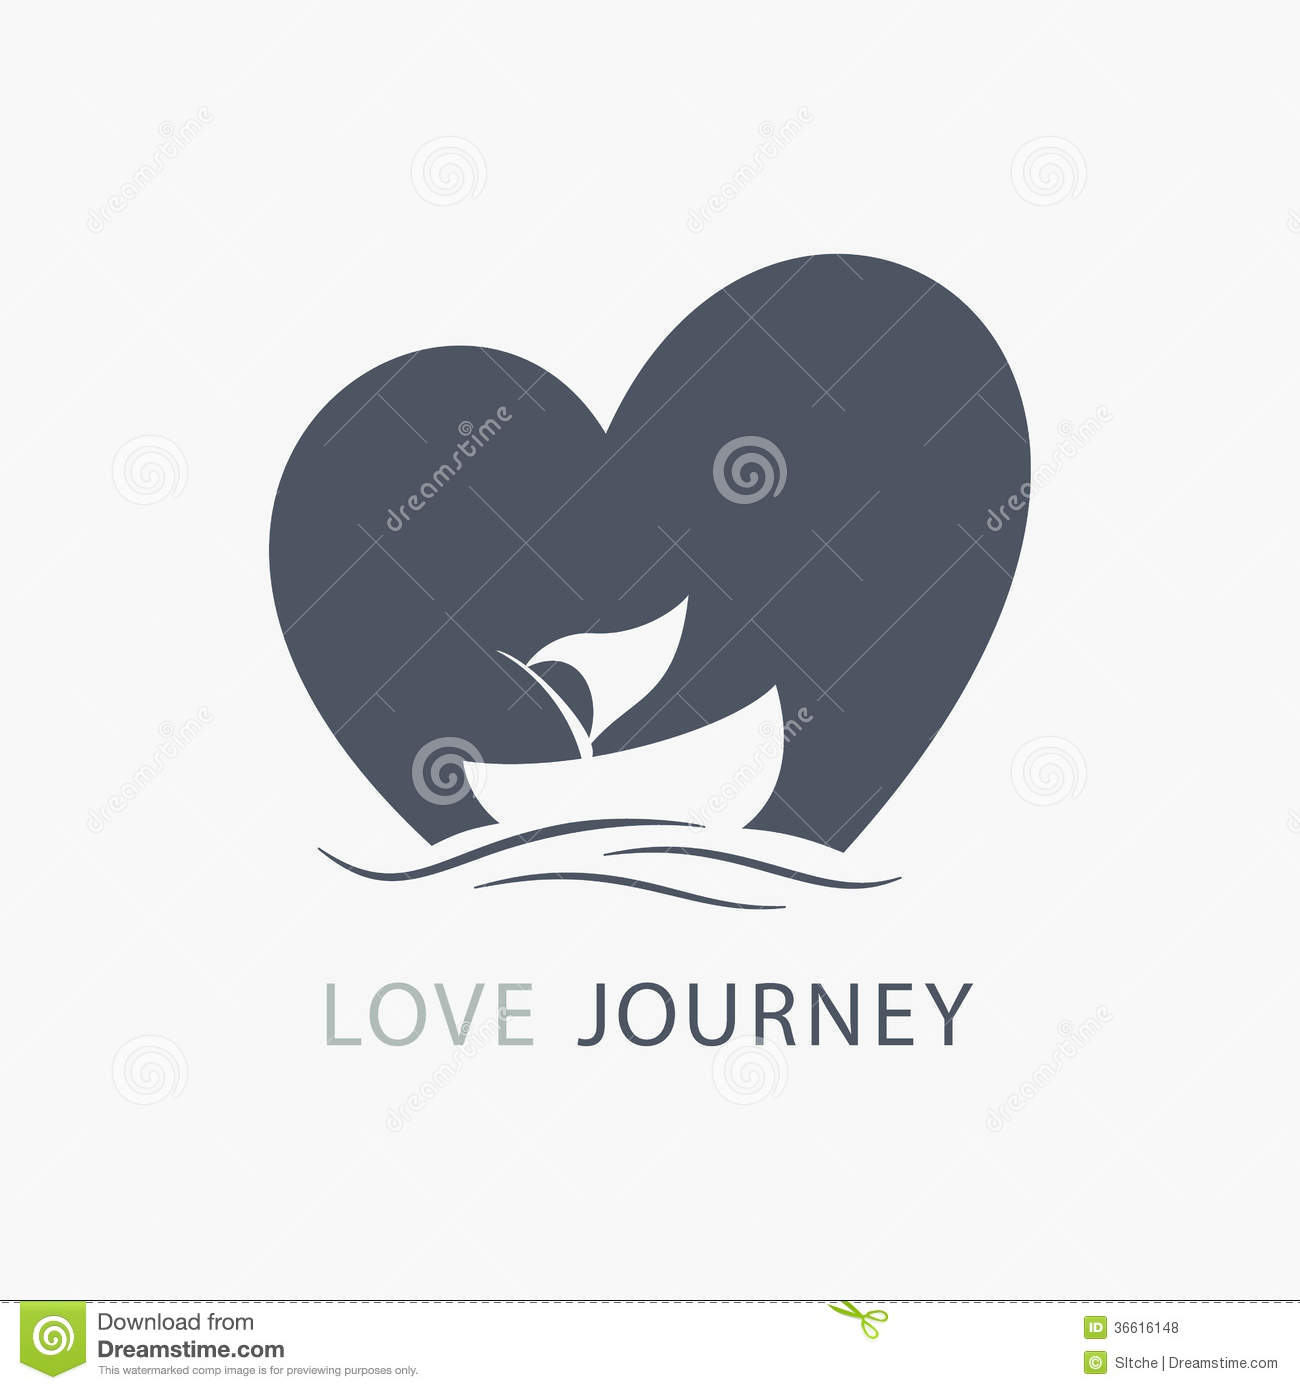 Journey Of Love Boat Logo With Heart Shape Background Royalty Free Stock Photos - Image: 36616148